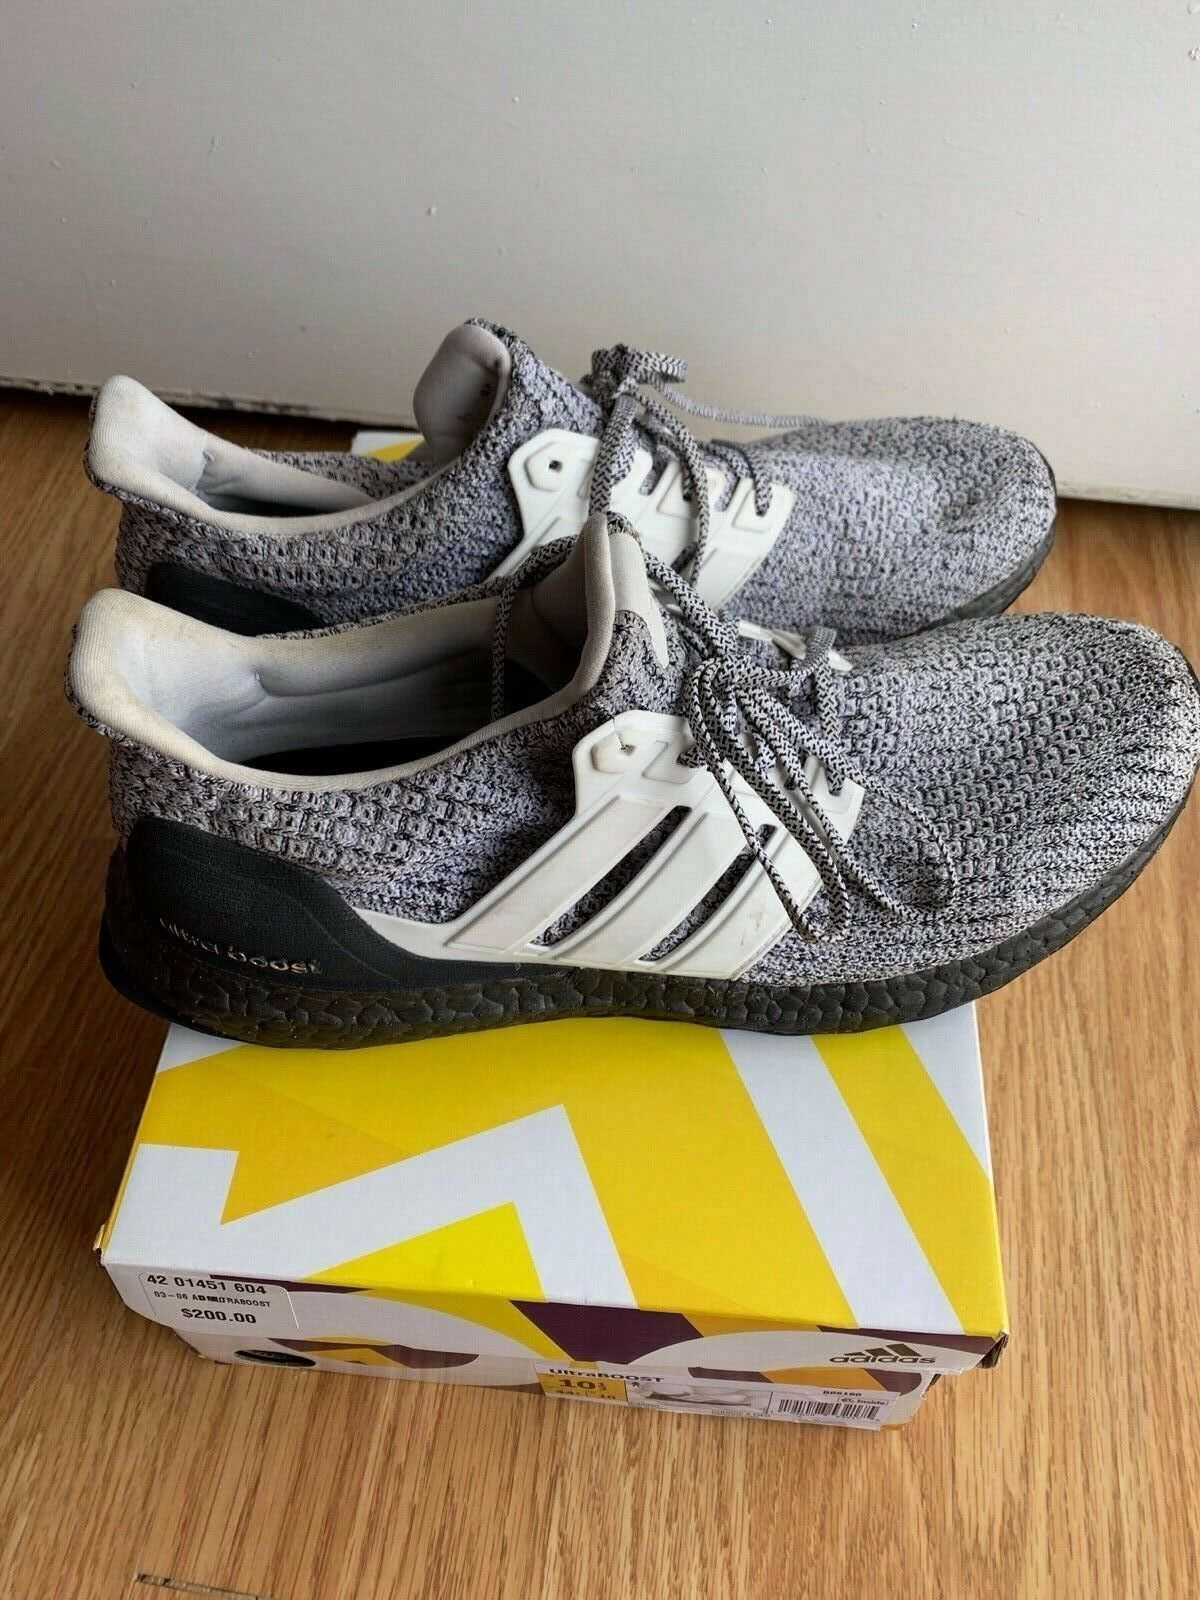 fb1663695b95d Adidas Ultra BOOST 4.0 Oreo BB6180 Cookies and Cream LTD Men s Size 10.5 US